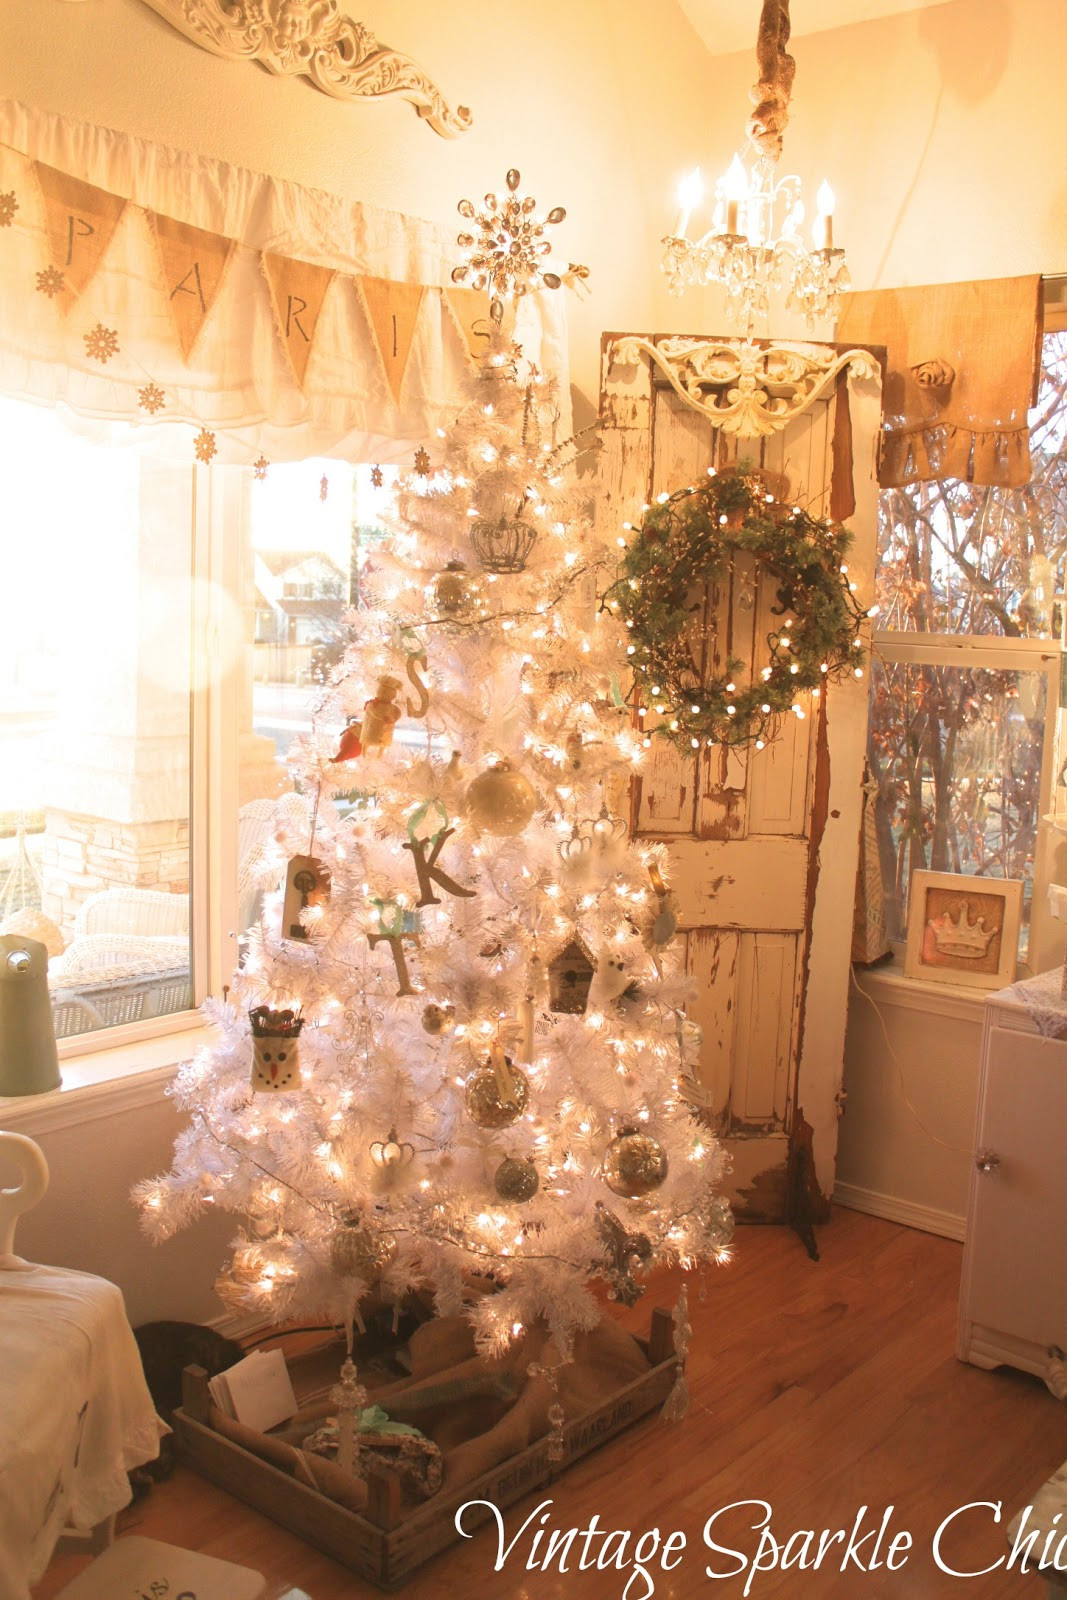 Best ideas about Shabby Chic Christmas . Save or Pin Vintage Sparkle Chic French Shabby Christmas decorations Now.